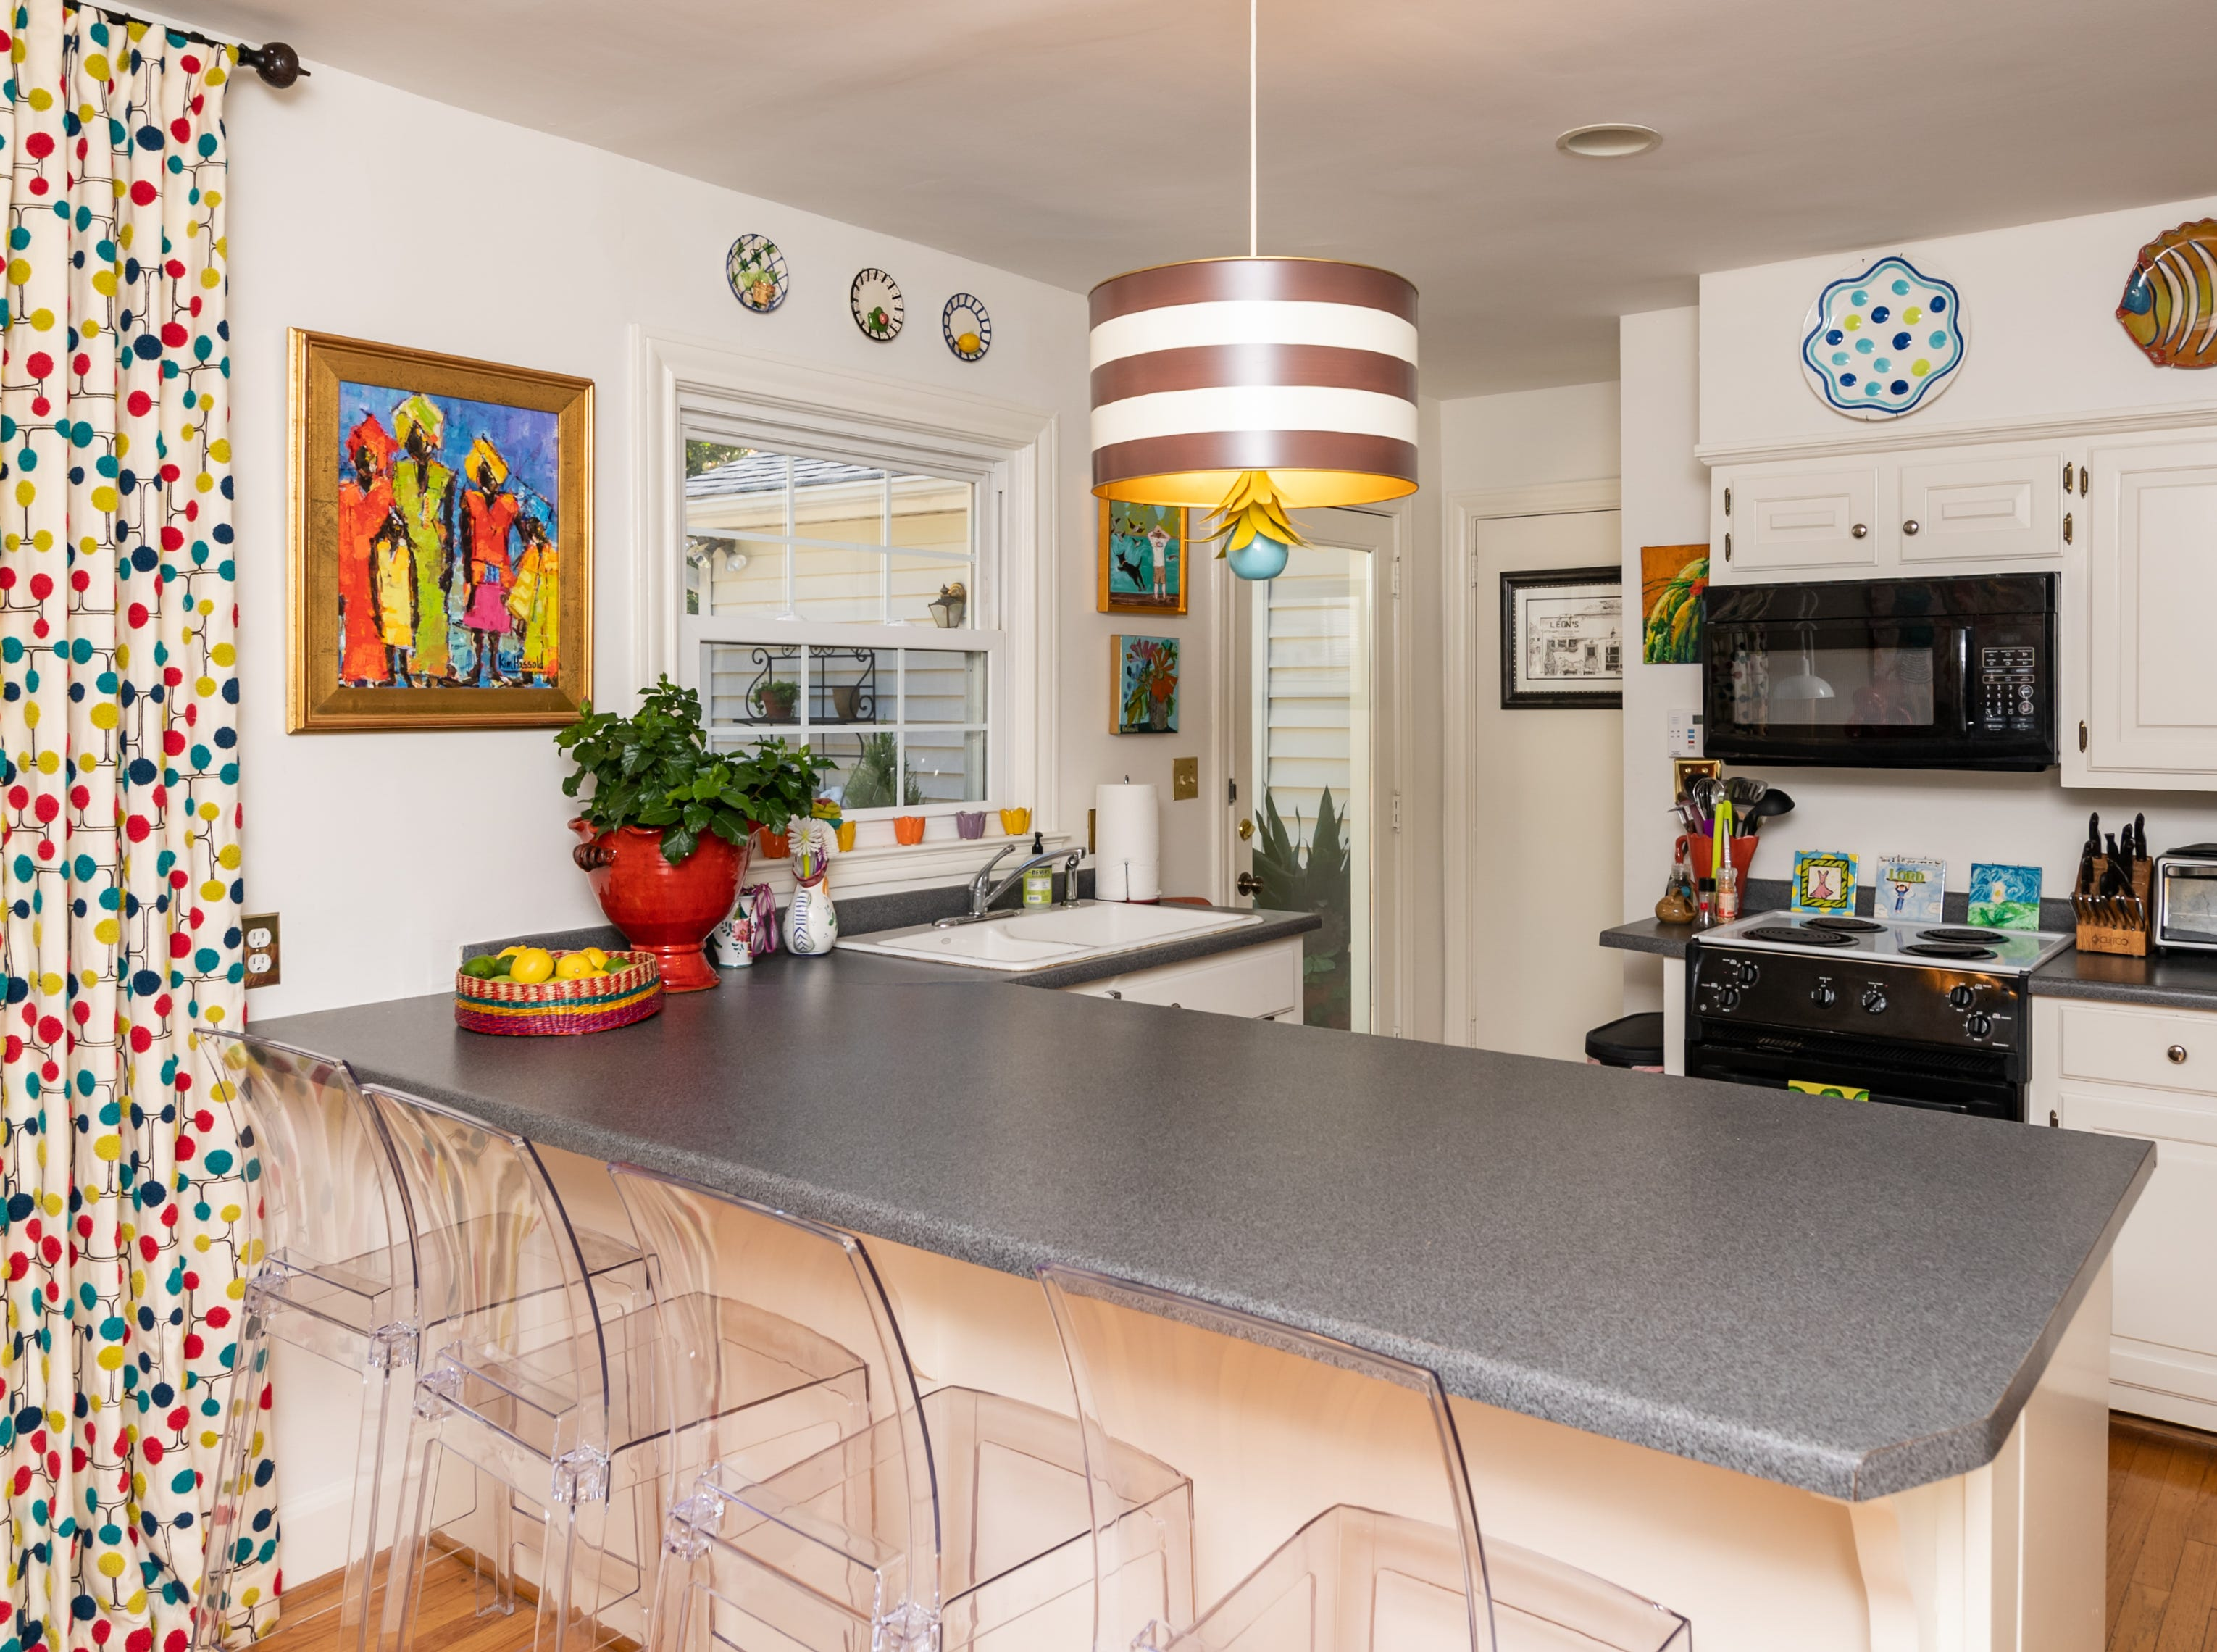 What happens when an artist with a creative eye and a love for mixing the old with the new shakes up the plan? This ranch house reinvented with with neutral walls and pops of color throughout.